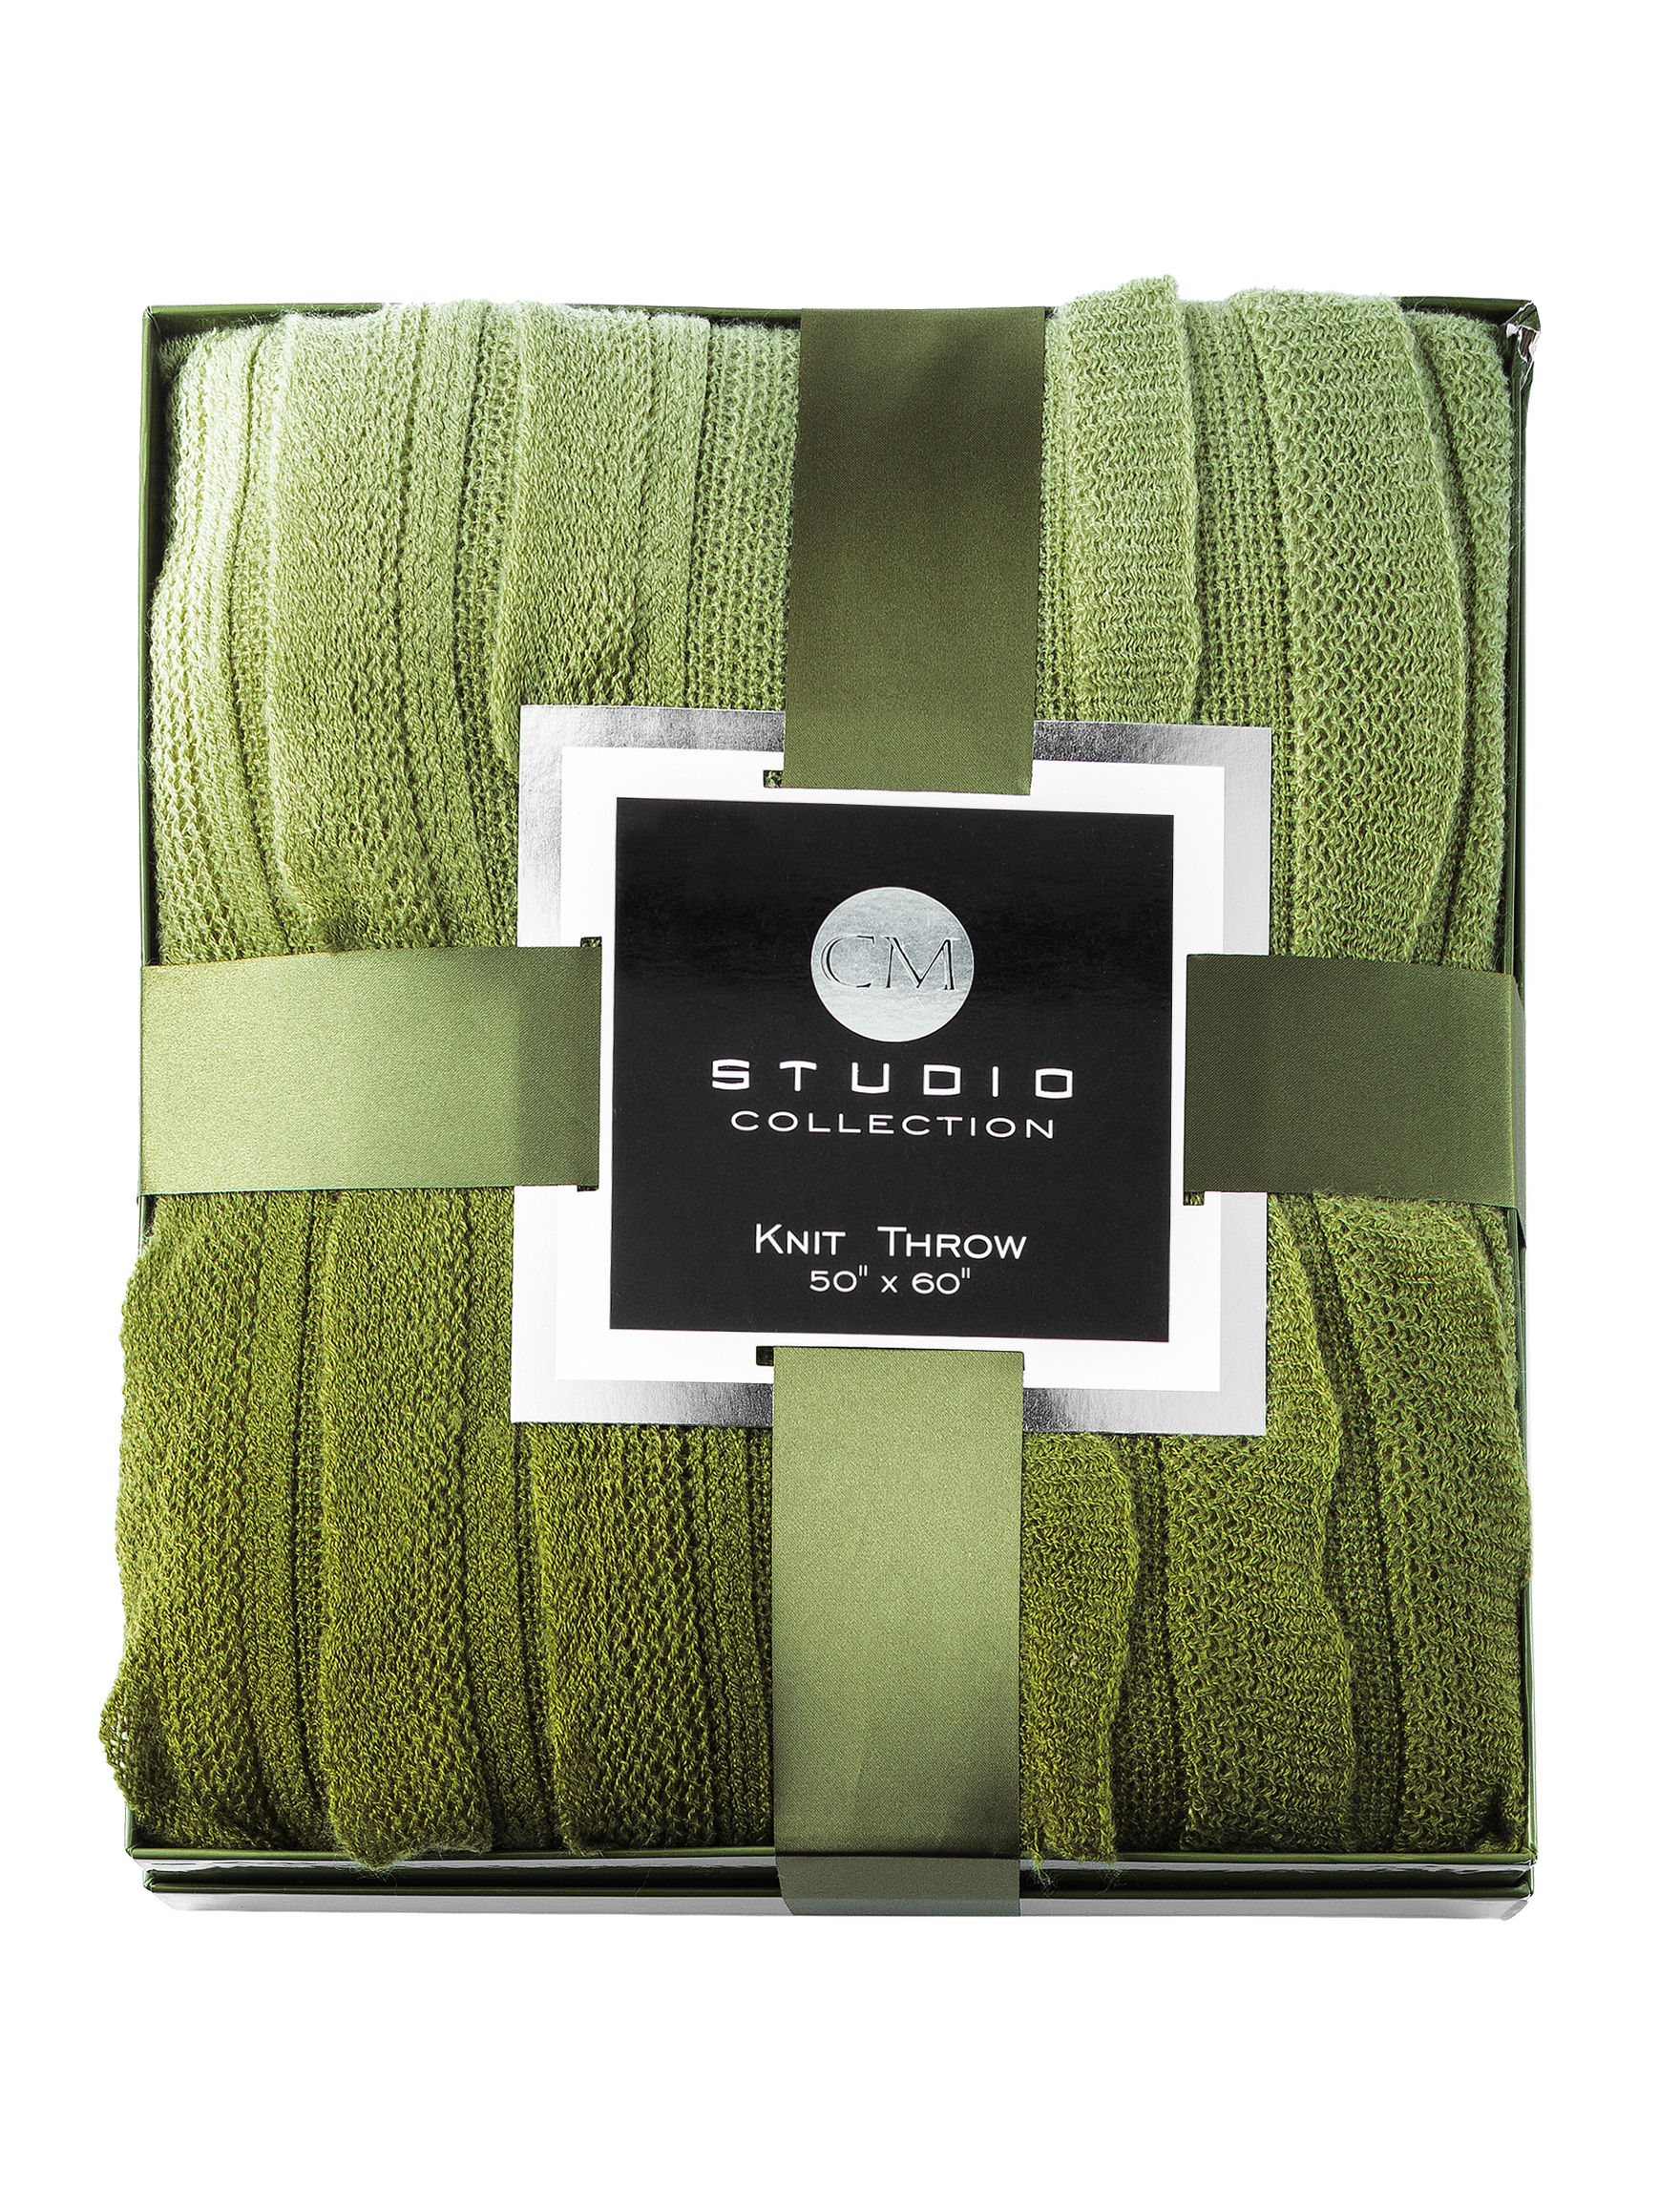 CM Studio Collection Green Blankets & Throws